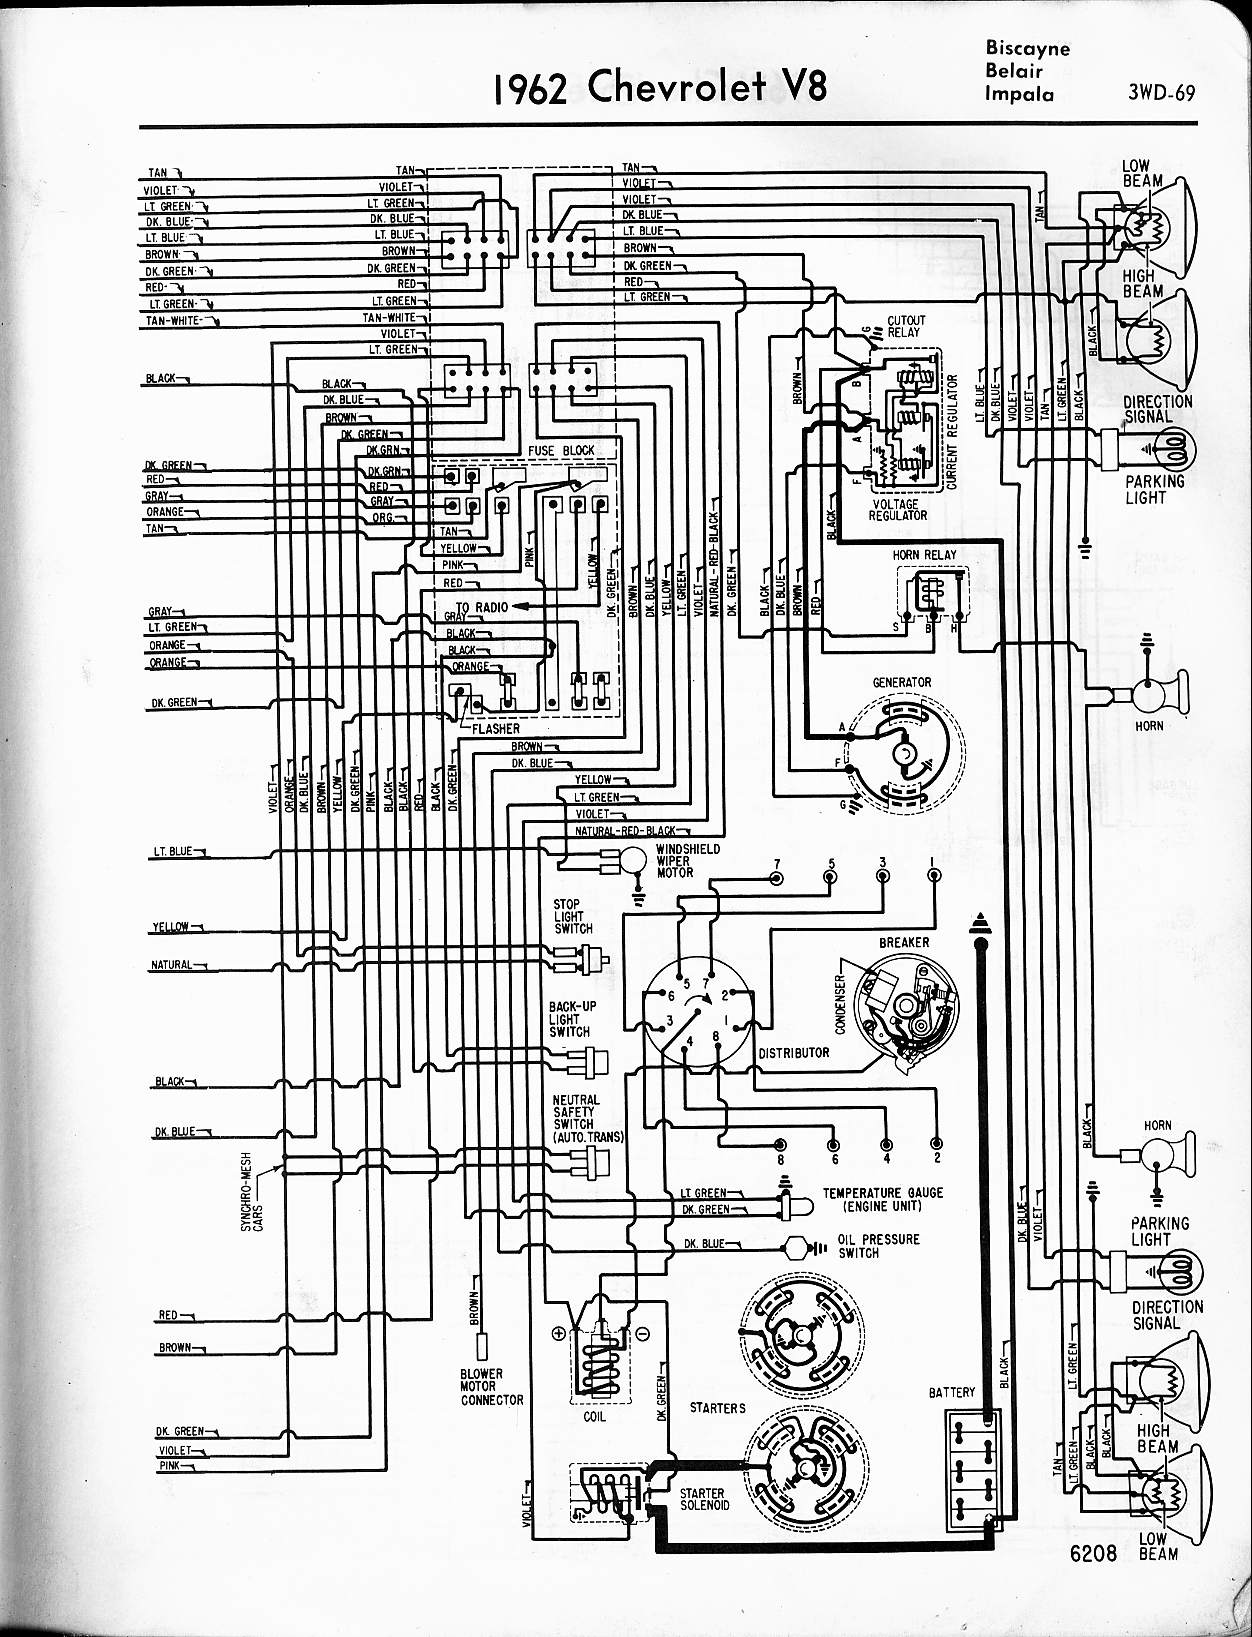 wiring diagram 1965 chevy impala schematics online 64 impala 1964 impala wiring diagram blower motor circuit wiring diagram